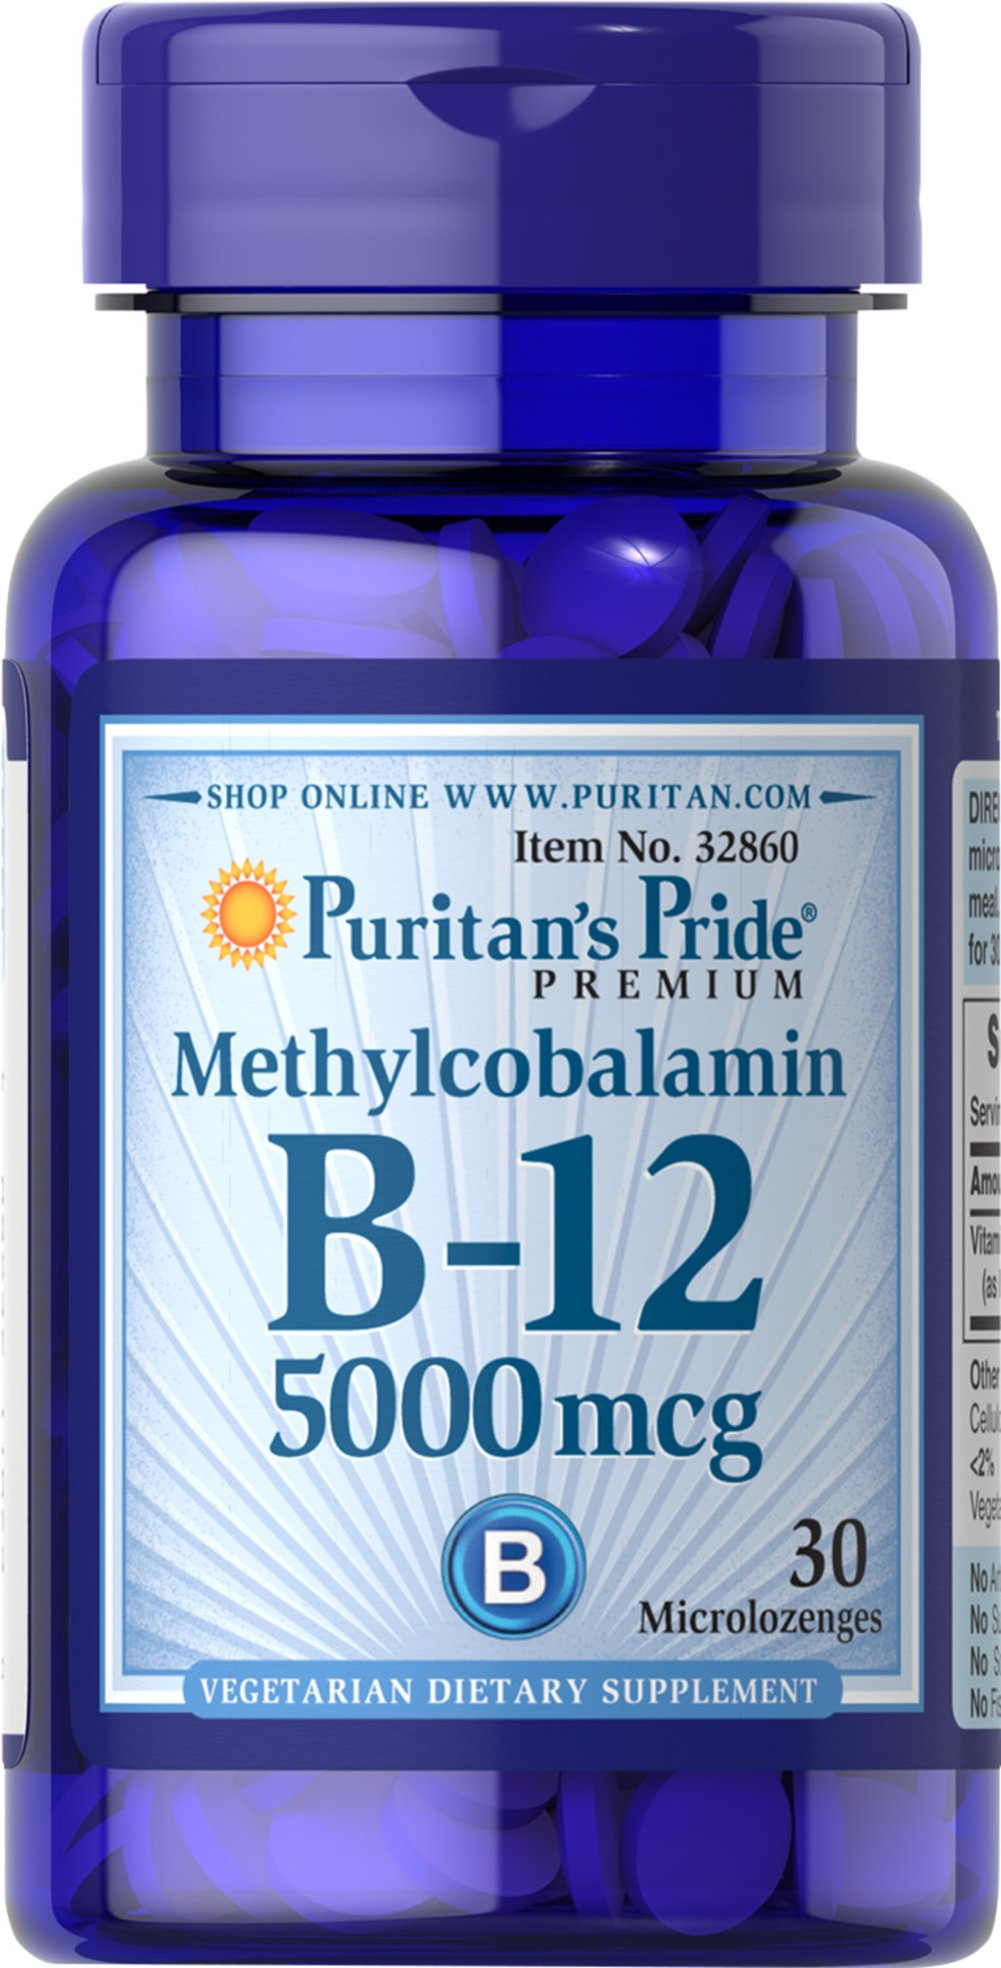 Methylcobalamin Vitamin B-12 5000 mcg <p>Methylcobalamin is a more predominant and active form of Vitamin B-12</p>  <p>Regular Vitamin B-12 supplements must be converted in the body to Methylcobalamin before they can provide any benefits – taking Methylcobalamin allows you to bypass this step for quicker absorption</p>  <p>This biologically active form of B 12 promotes heart health and energy metabolism**</p> 30 Microlozenges 5000 mcg